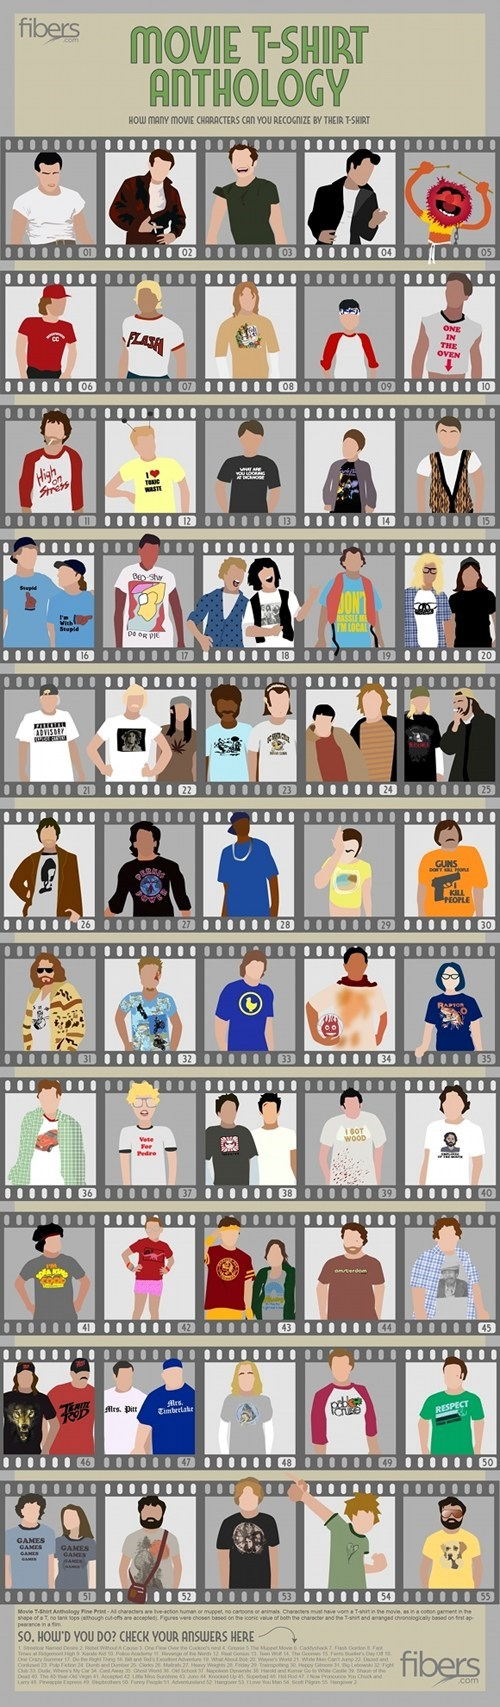 movie t-shirt anthology,quiz